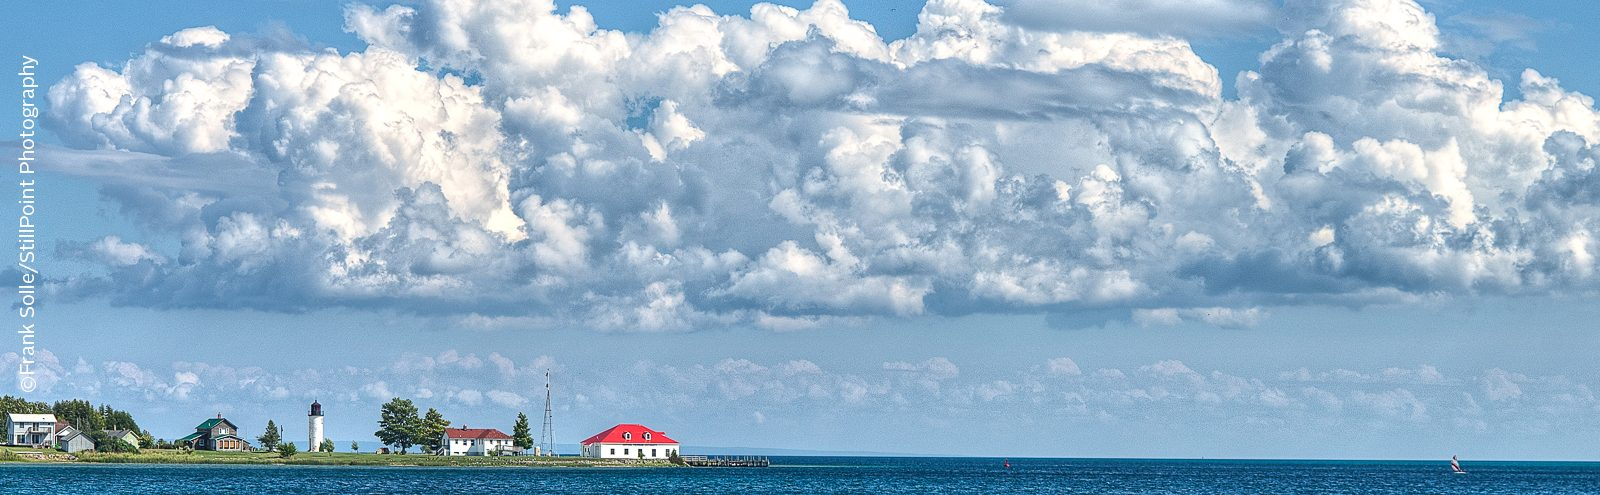 Beaver Island ©Frank Solle/StillPoint Photography